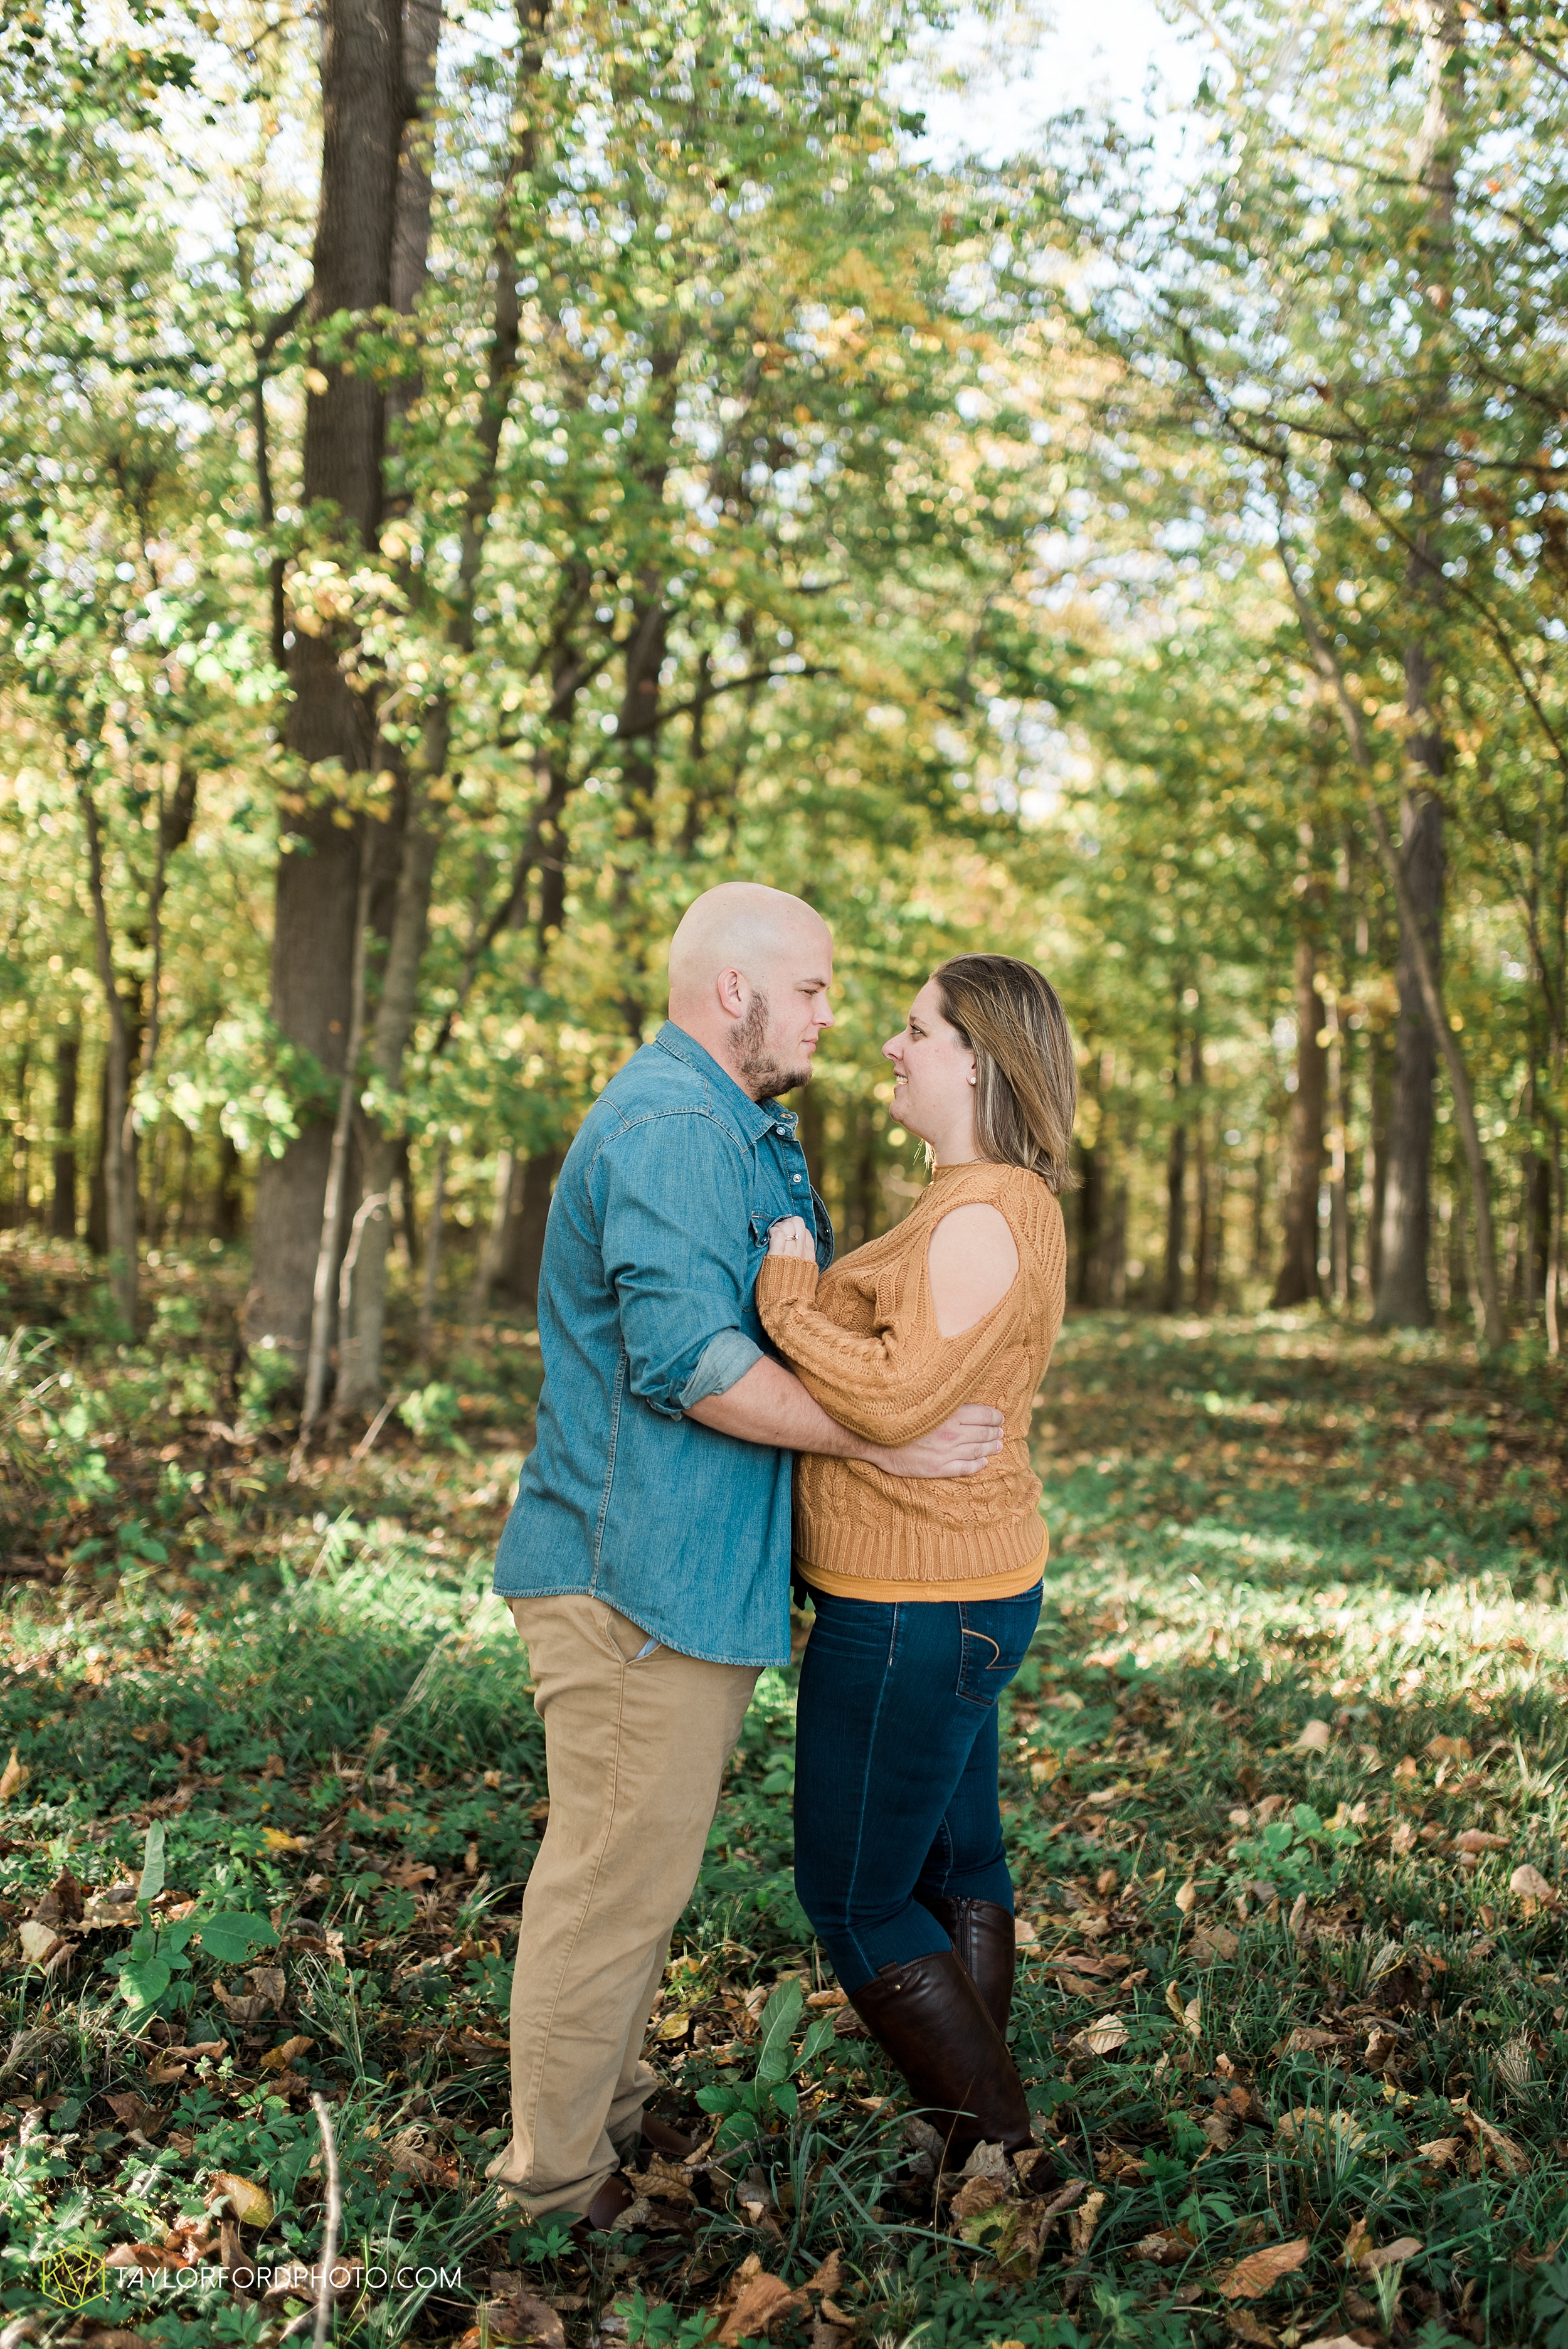 van-wert-ohio-engagement-wedding-photographer-Taylor-Ford-Photography-fall-farm-nature_4138.jpg